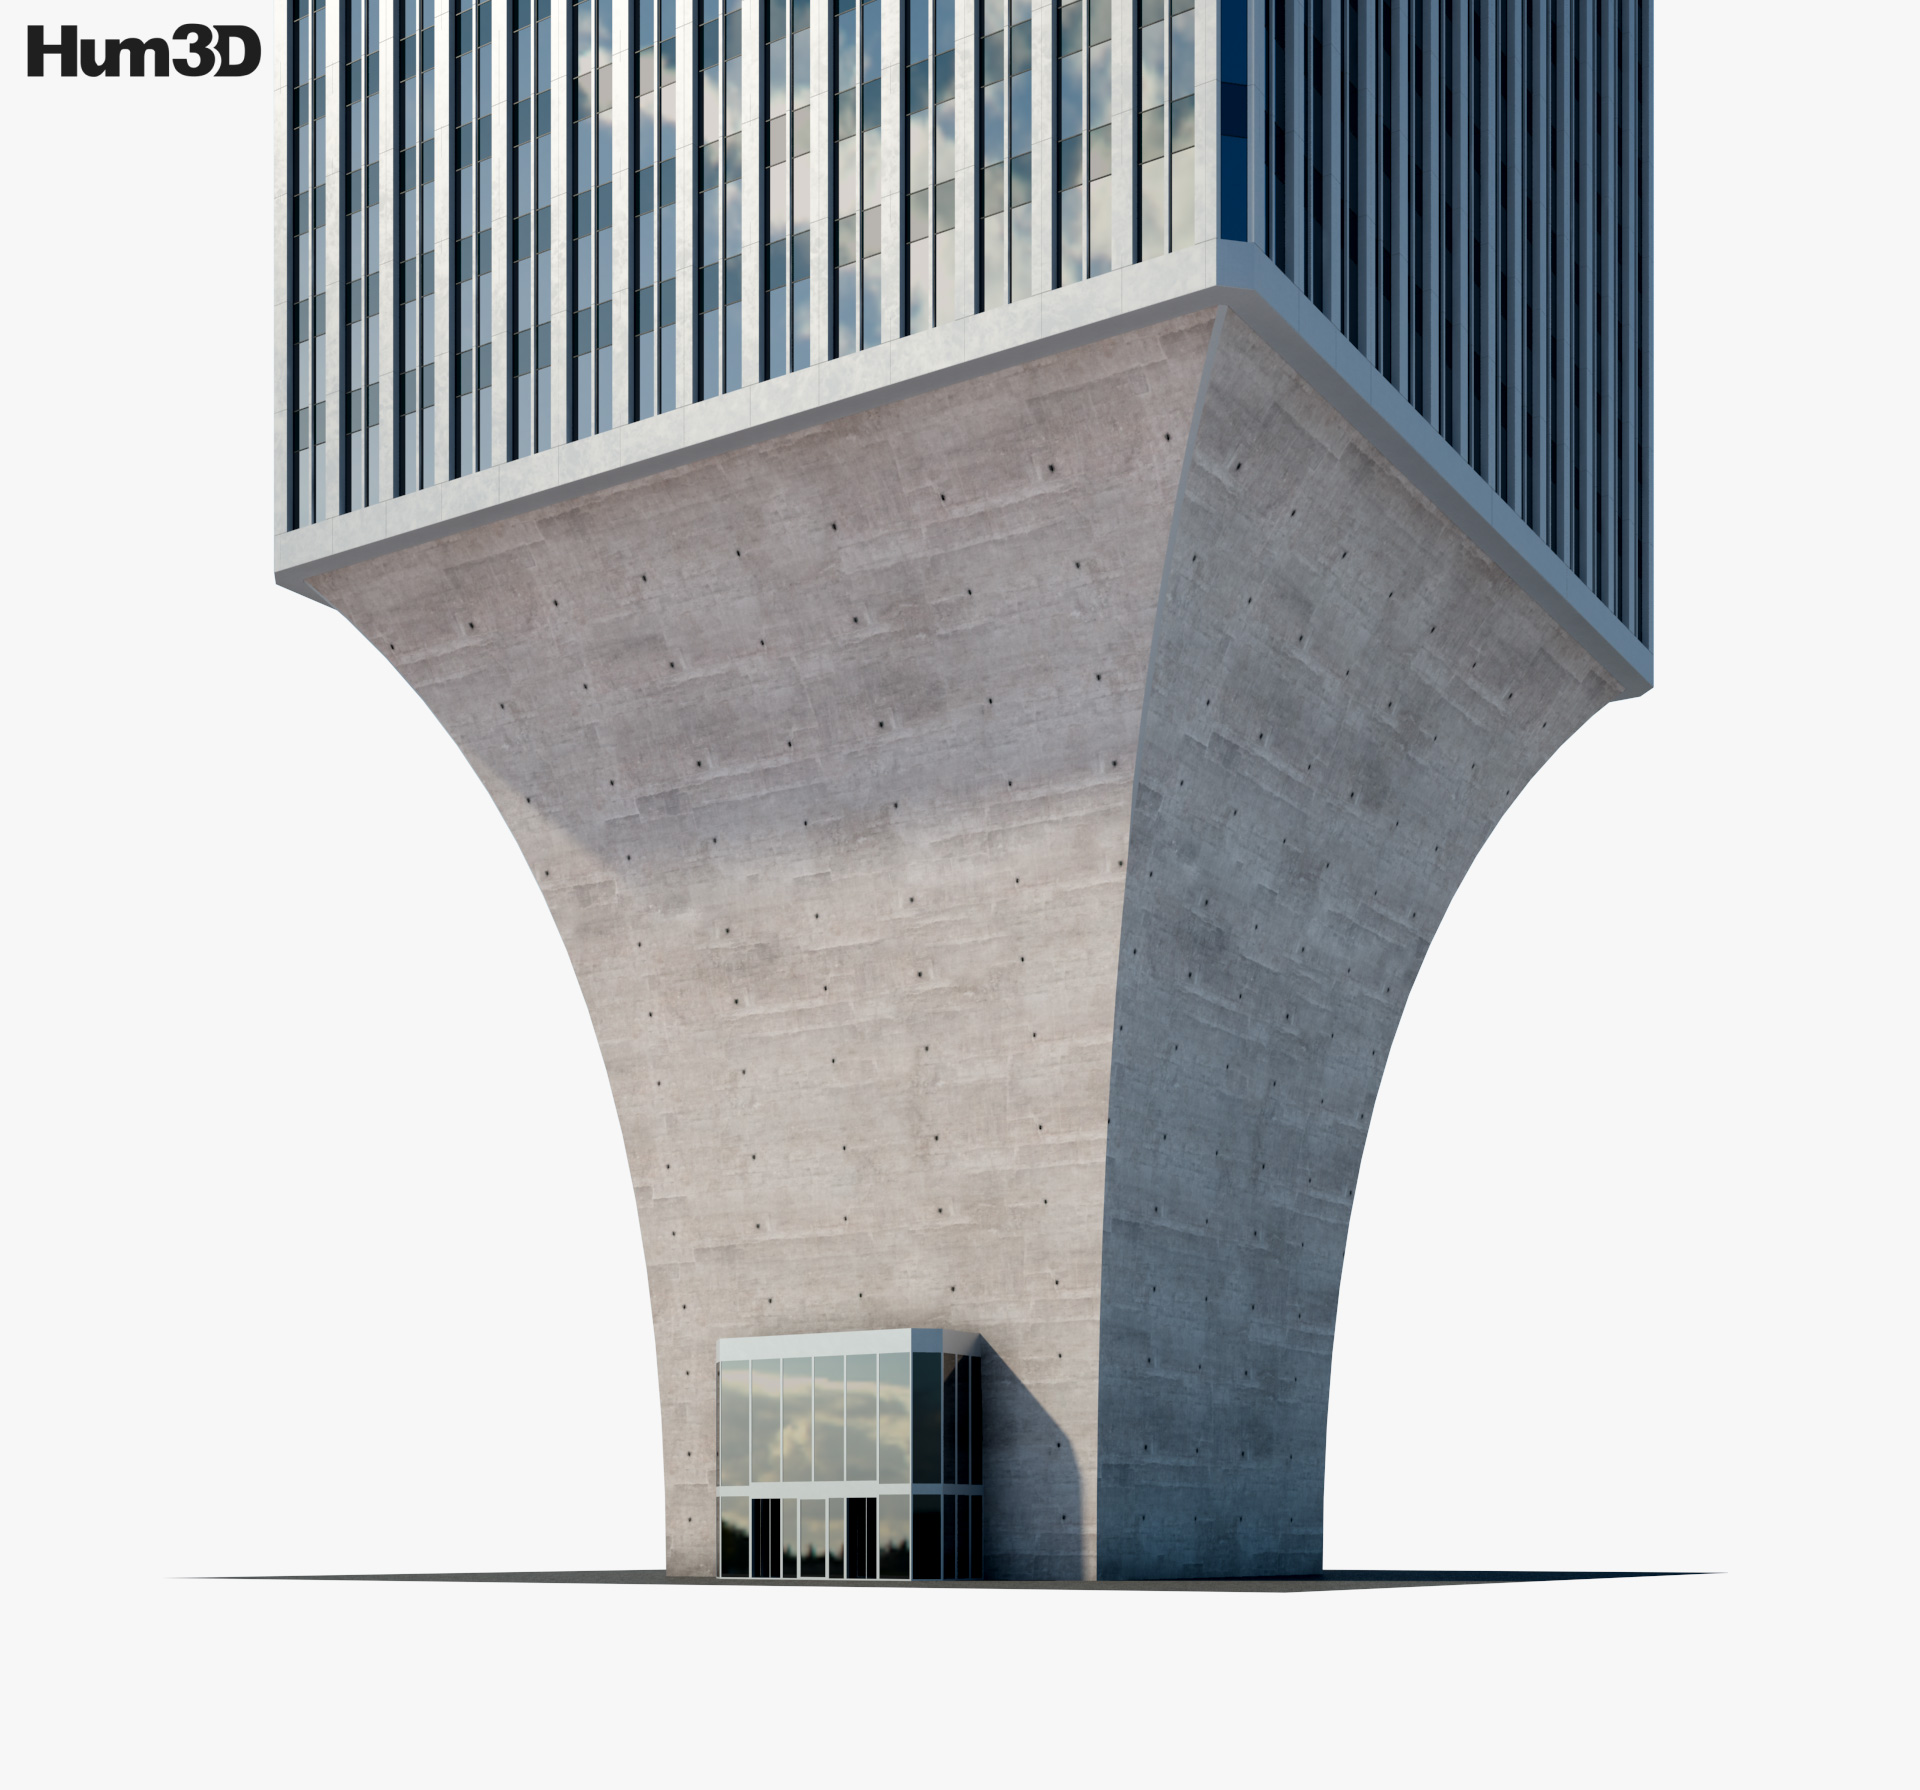 Rainier Tower 3d model